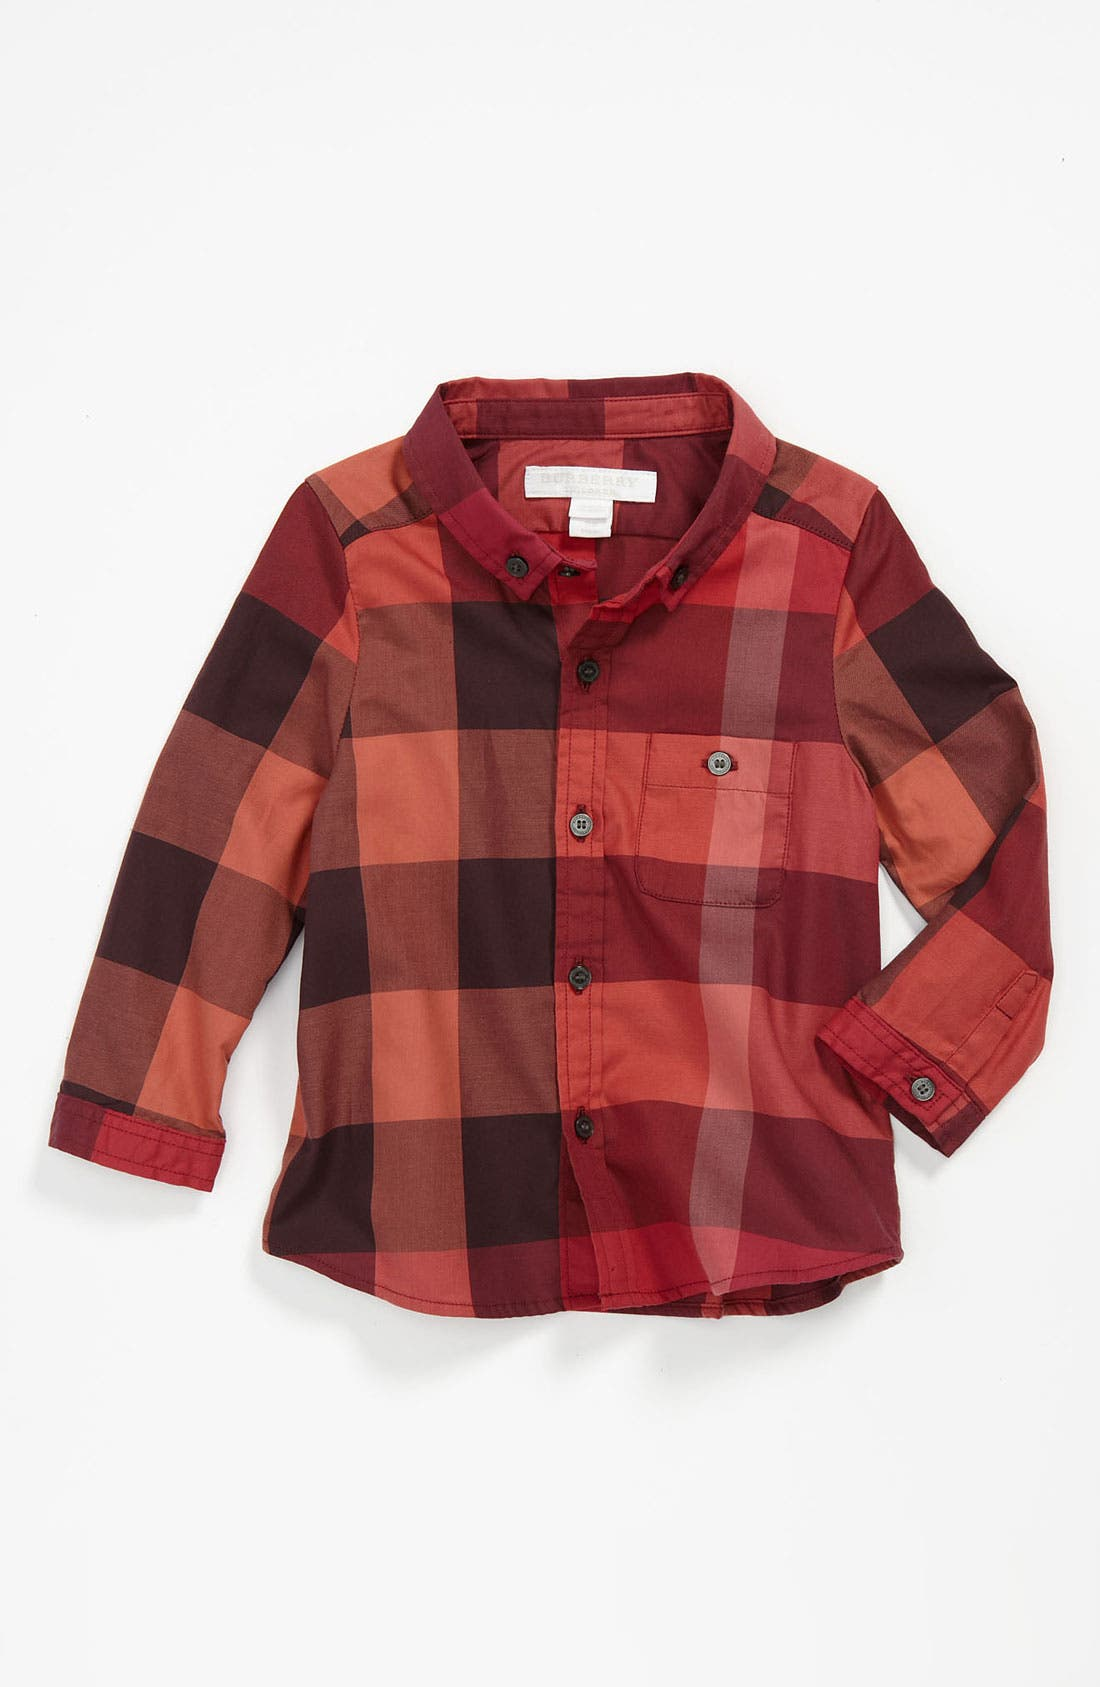 Main Image - Burberry 'Trauls' Woven Shirt (Infant)